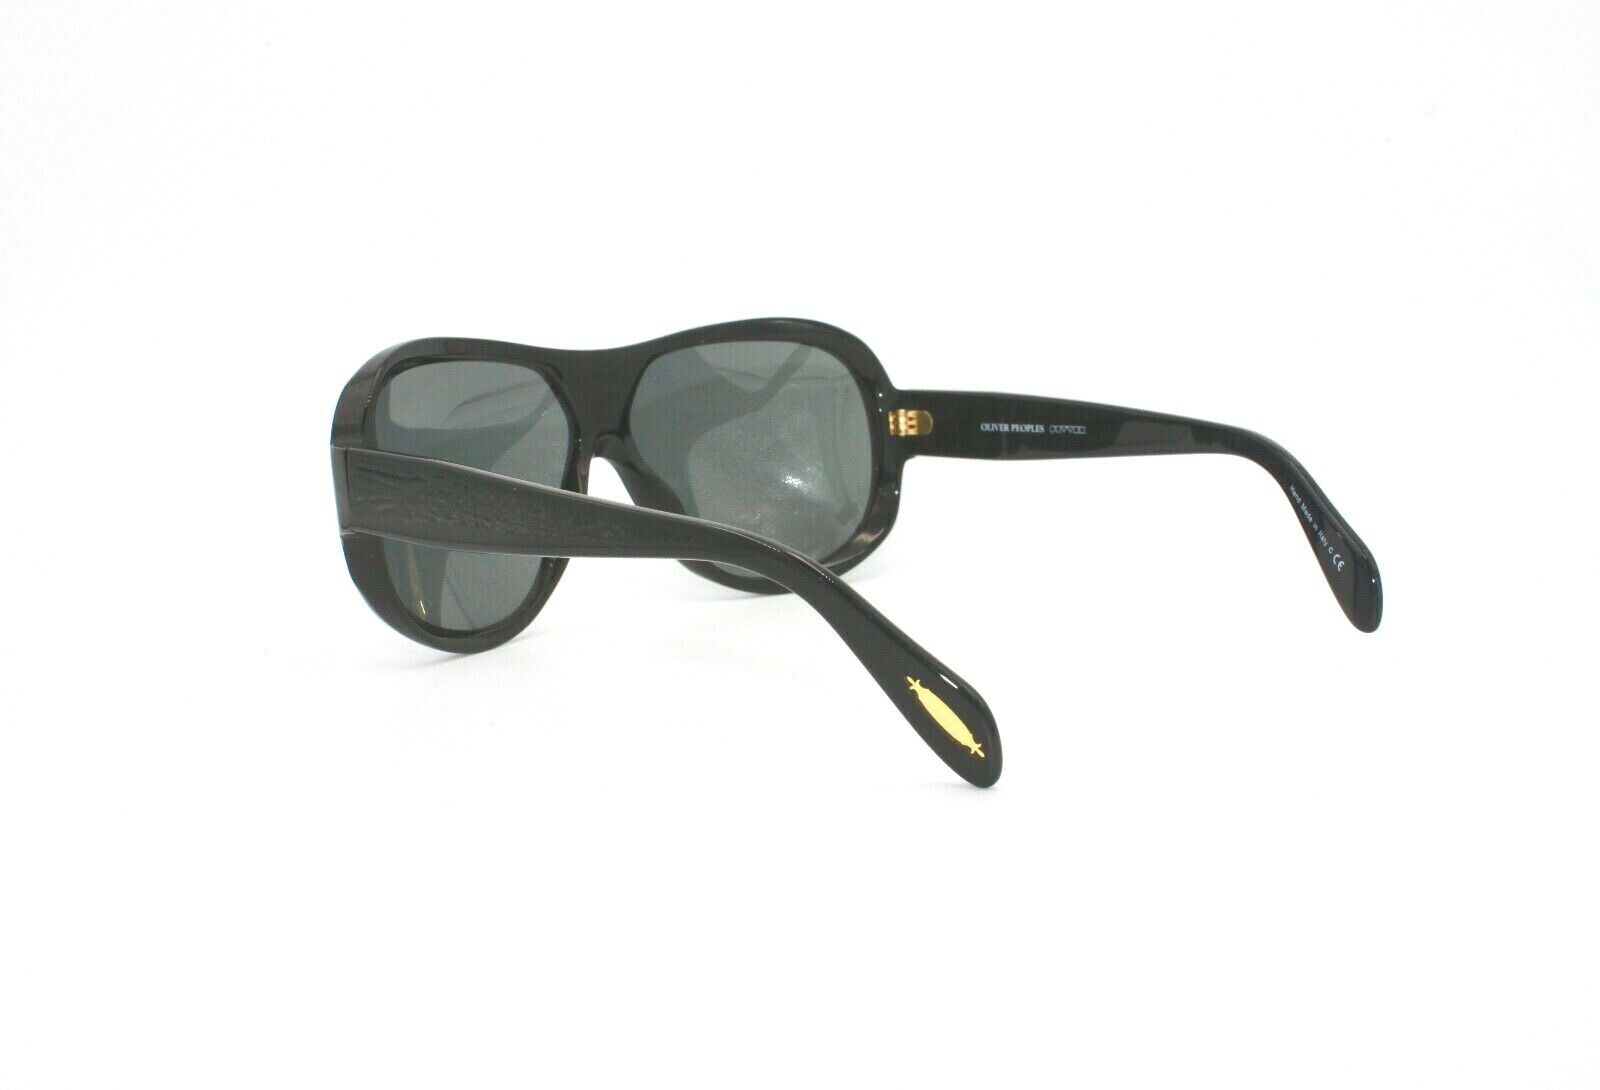 Oliver Peoples Sunglasses OV 5168-S 1005/87 Knox 62 12 140 3N Hand made in Italy - Mydesigneroptic